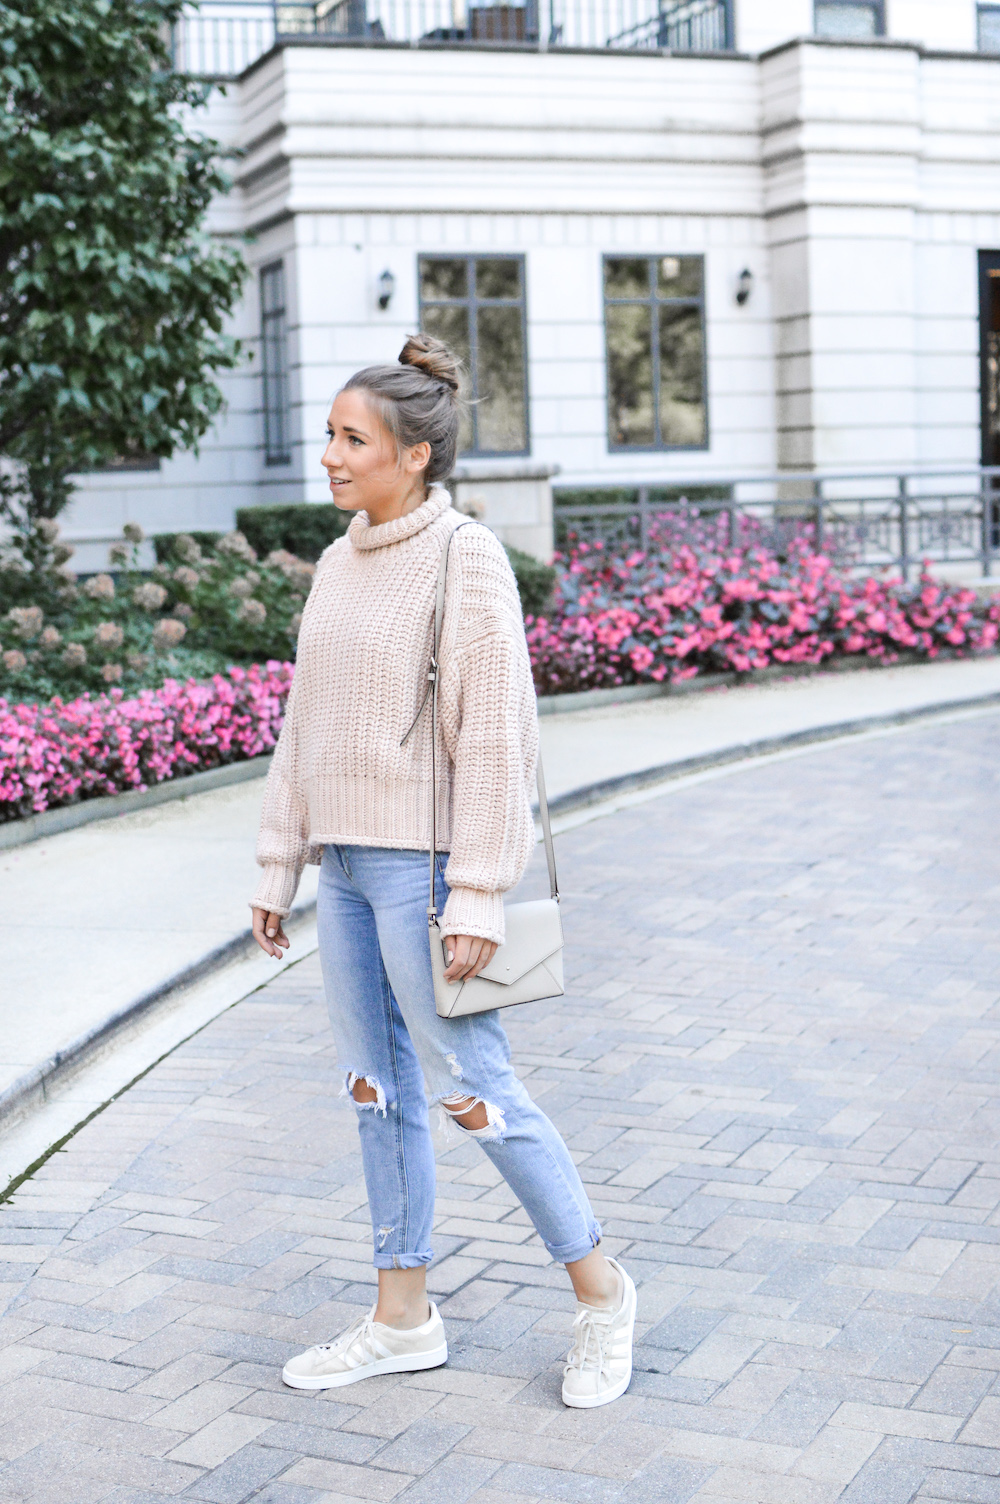 Blush Chunky Knit Sweater with Distressed Denim